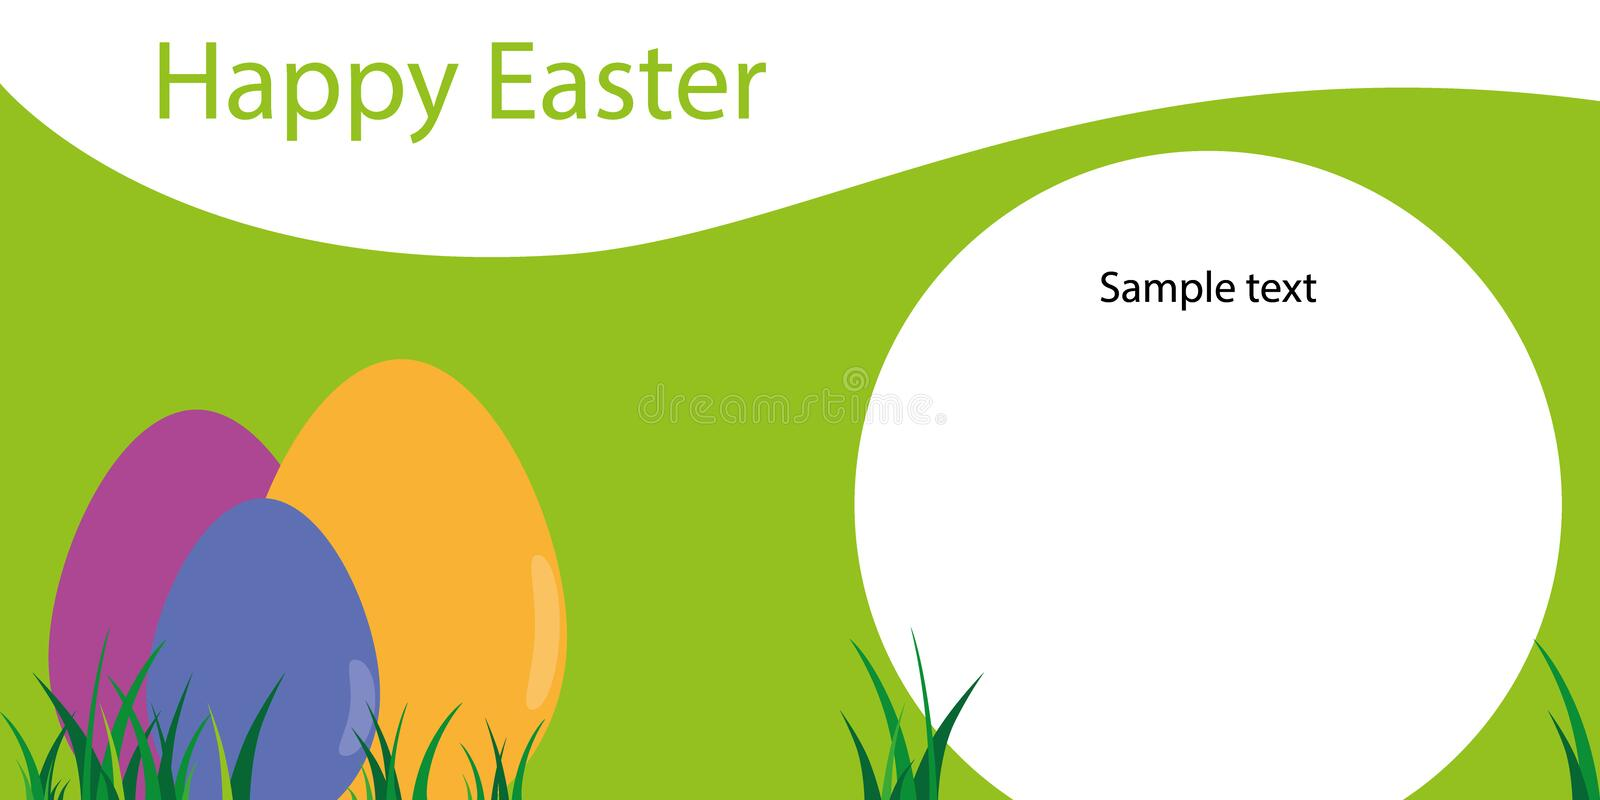 happy easter template